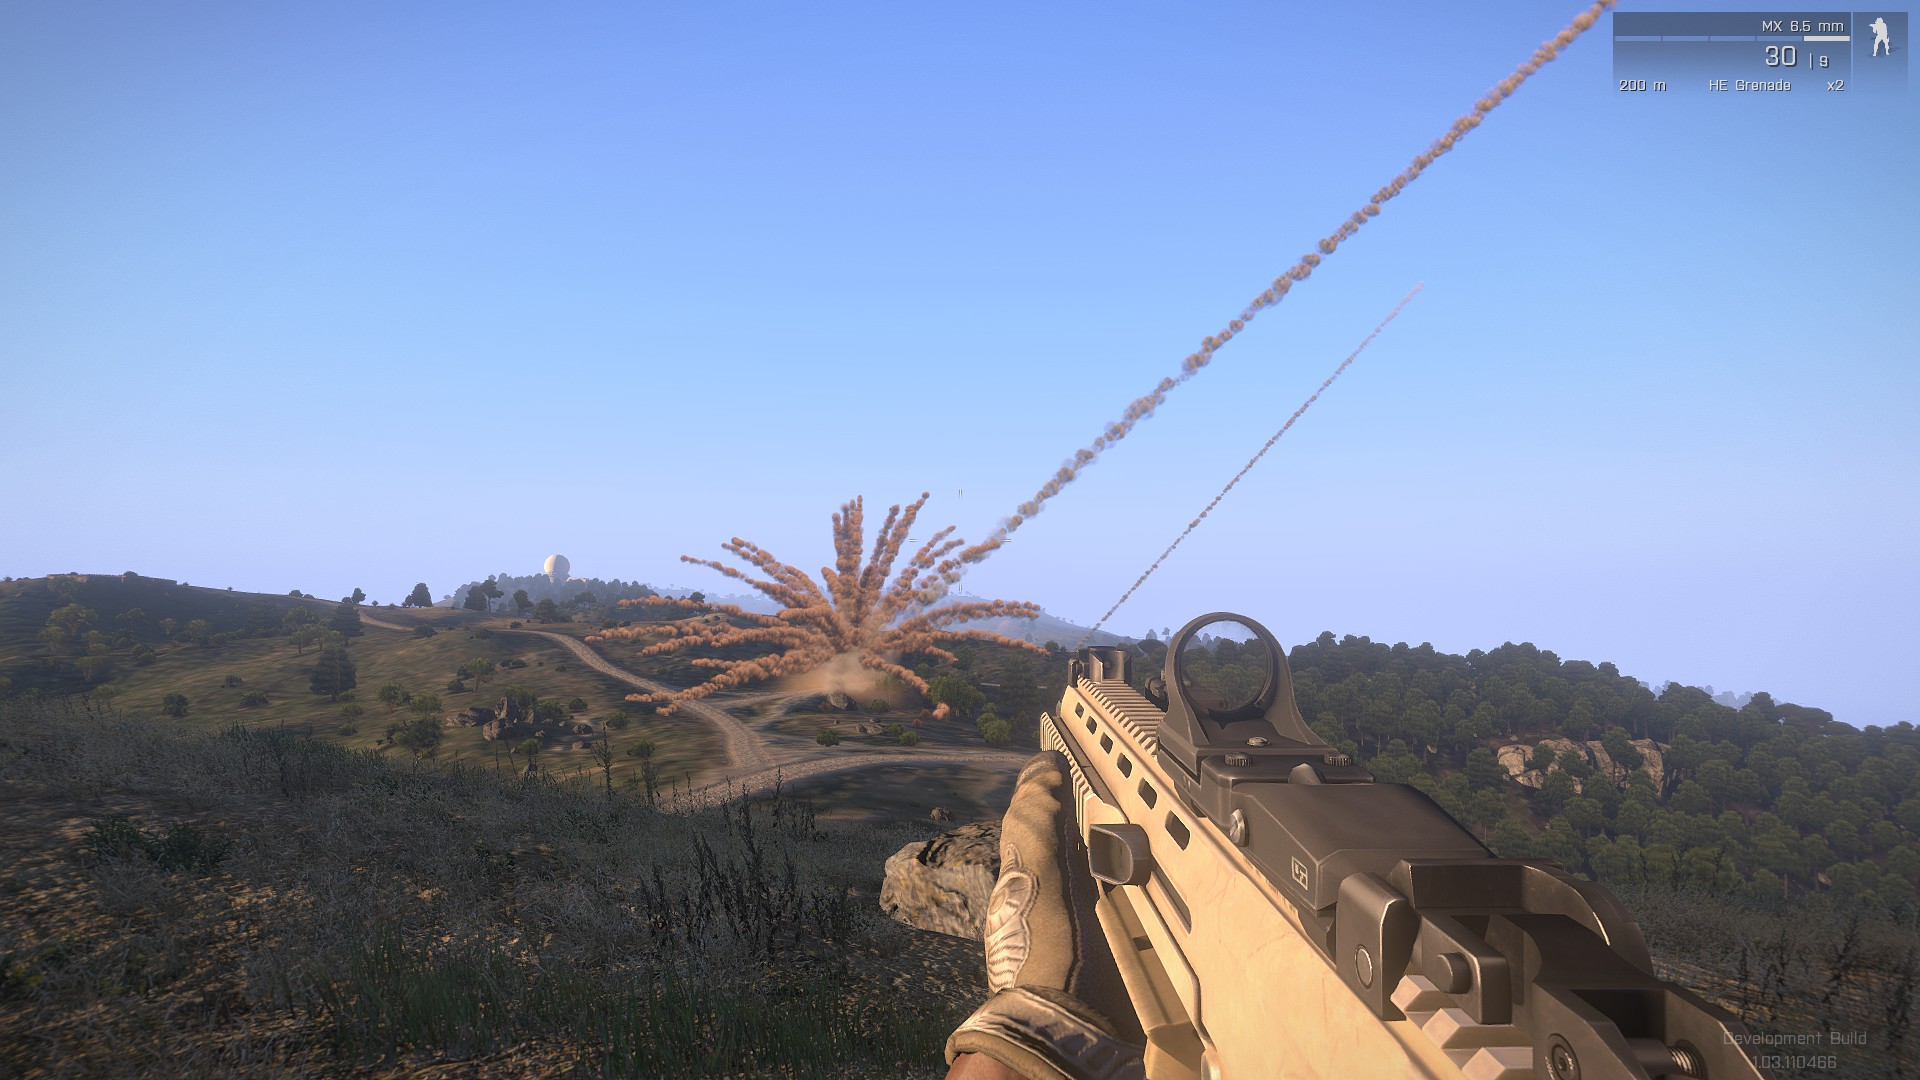 ArmAgeddon Mod Promises To Bring The Apocalypse In ArmA 3 - DSOGaming